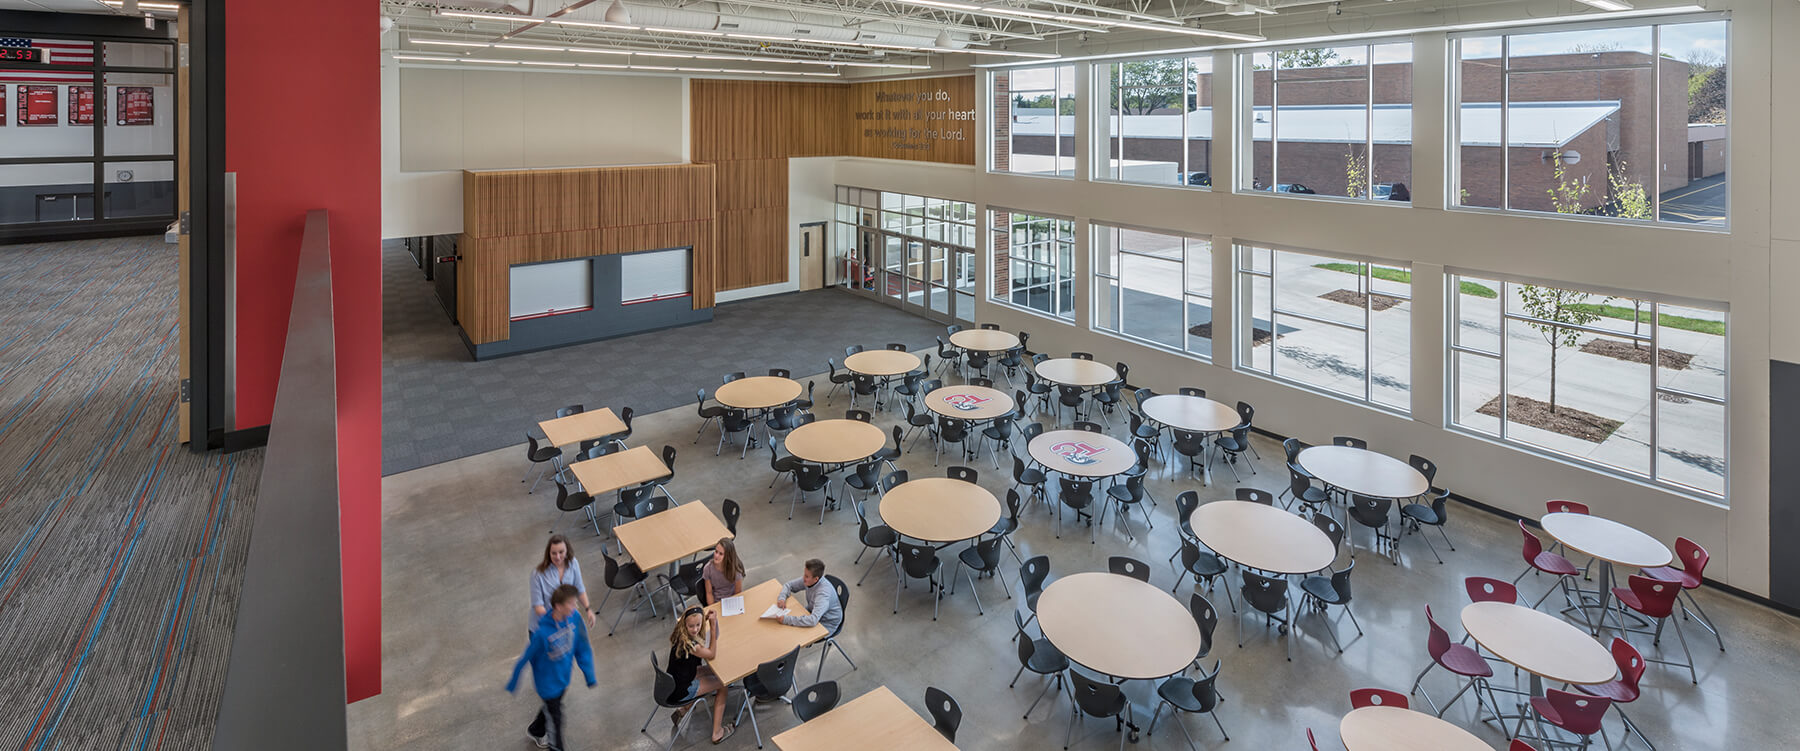 lunch room and gathering space at Timothy Christian Middle School